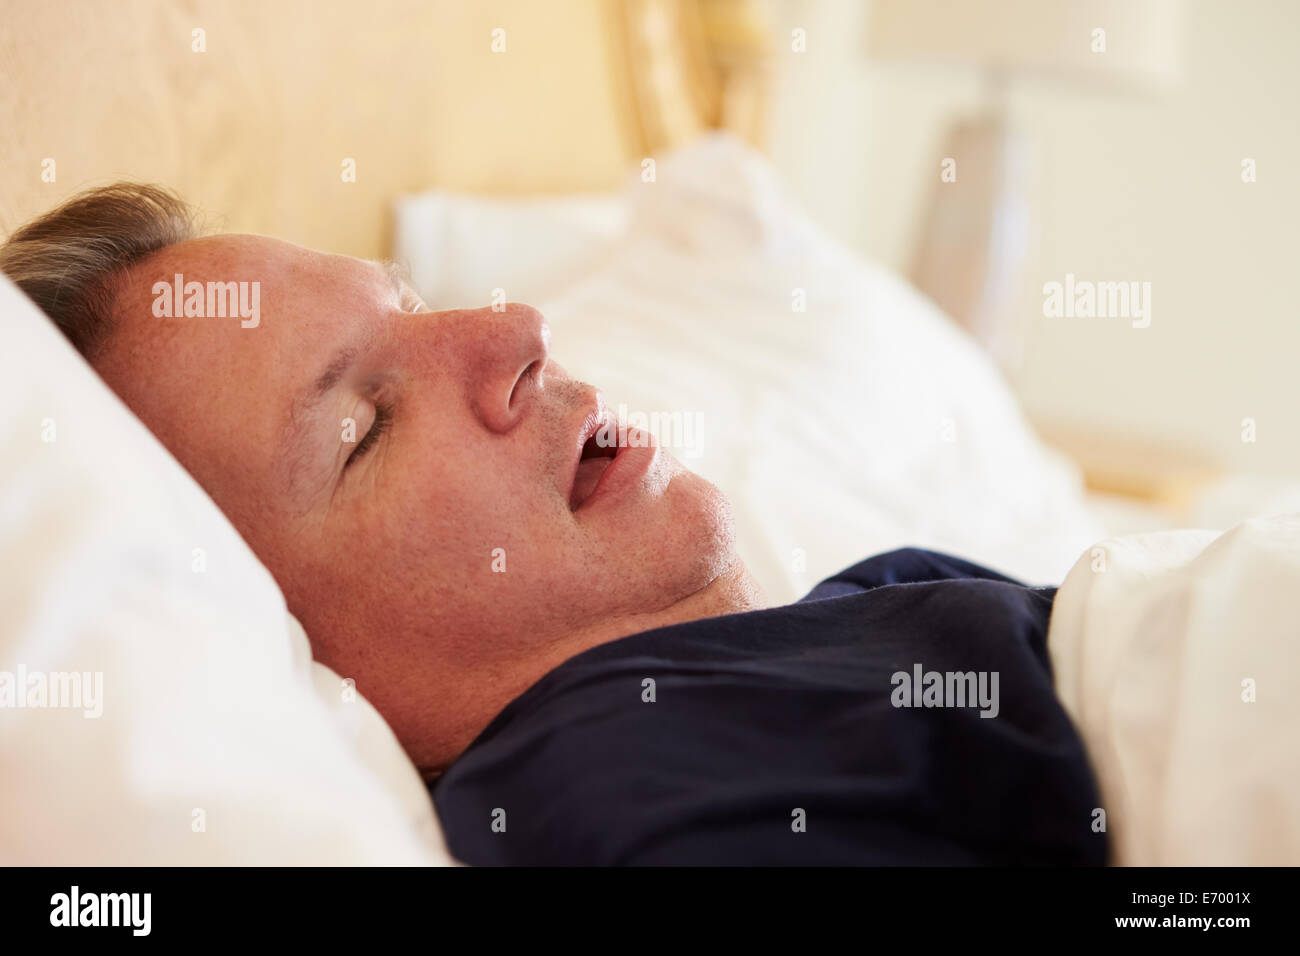 Overweight Man Asleep In Bed Snoring - Stock Image